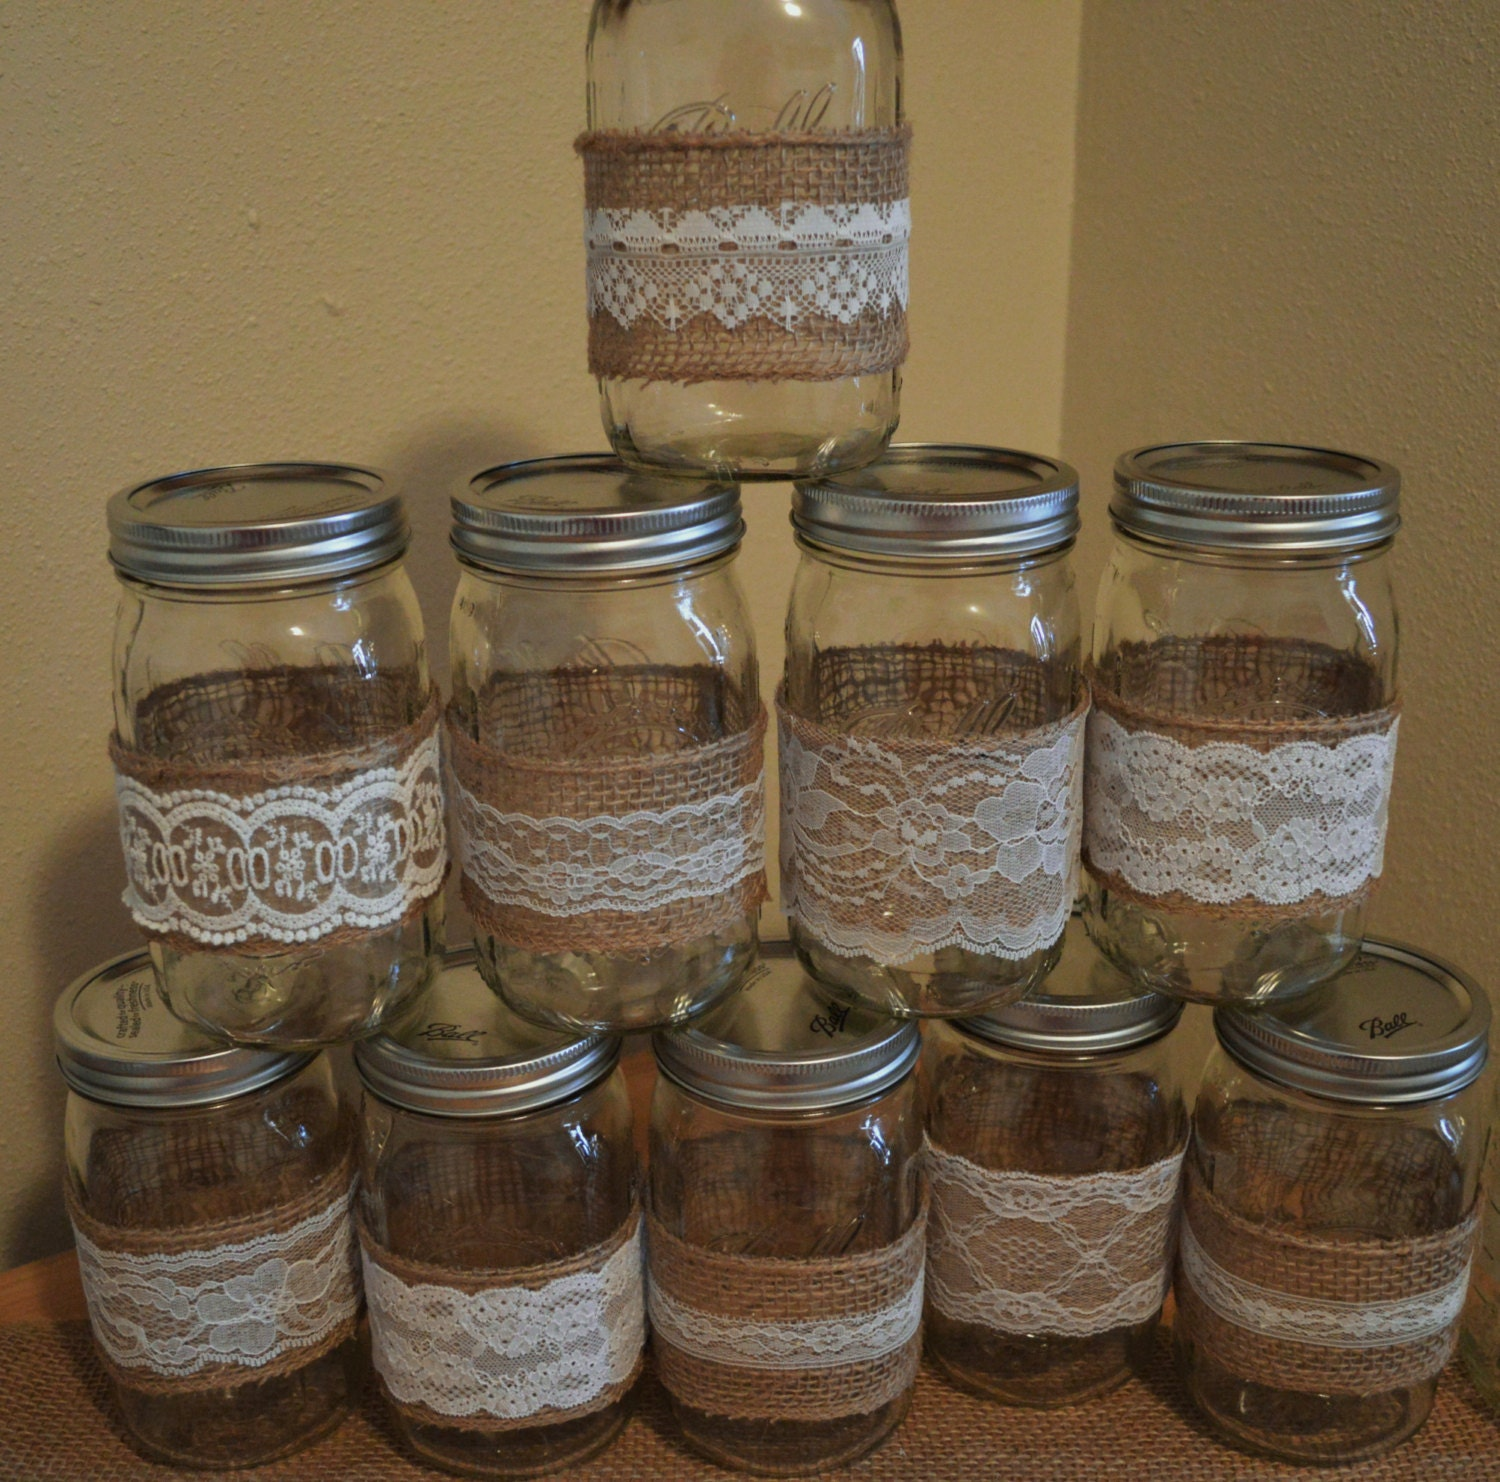 Rustic Jars For Wedding: 10 Burlap Mason Jar Sleeves DIY Wedding Decorations Rustic